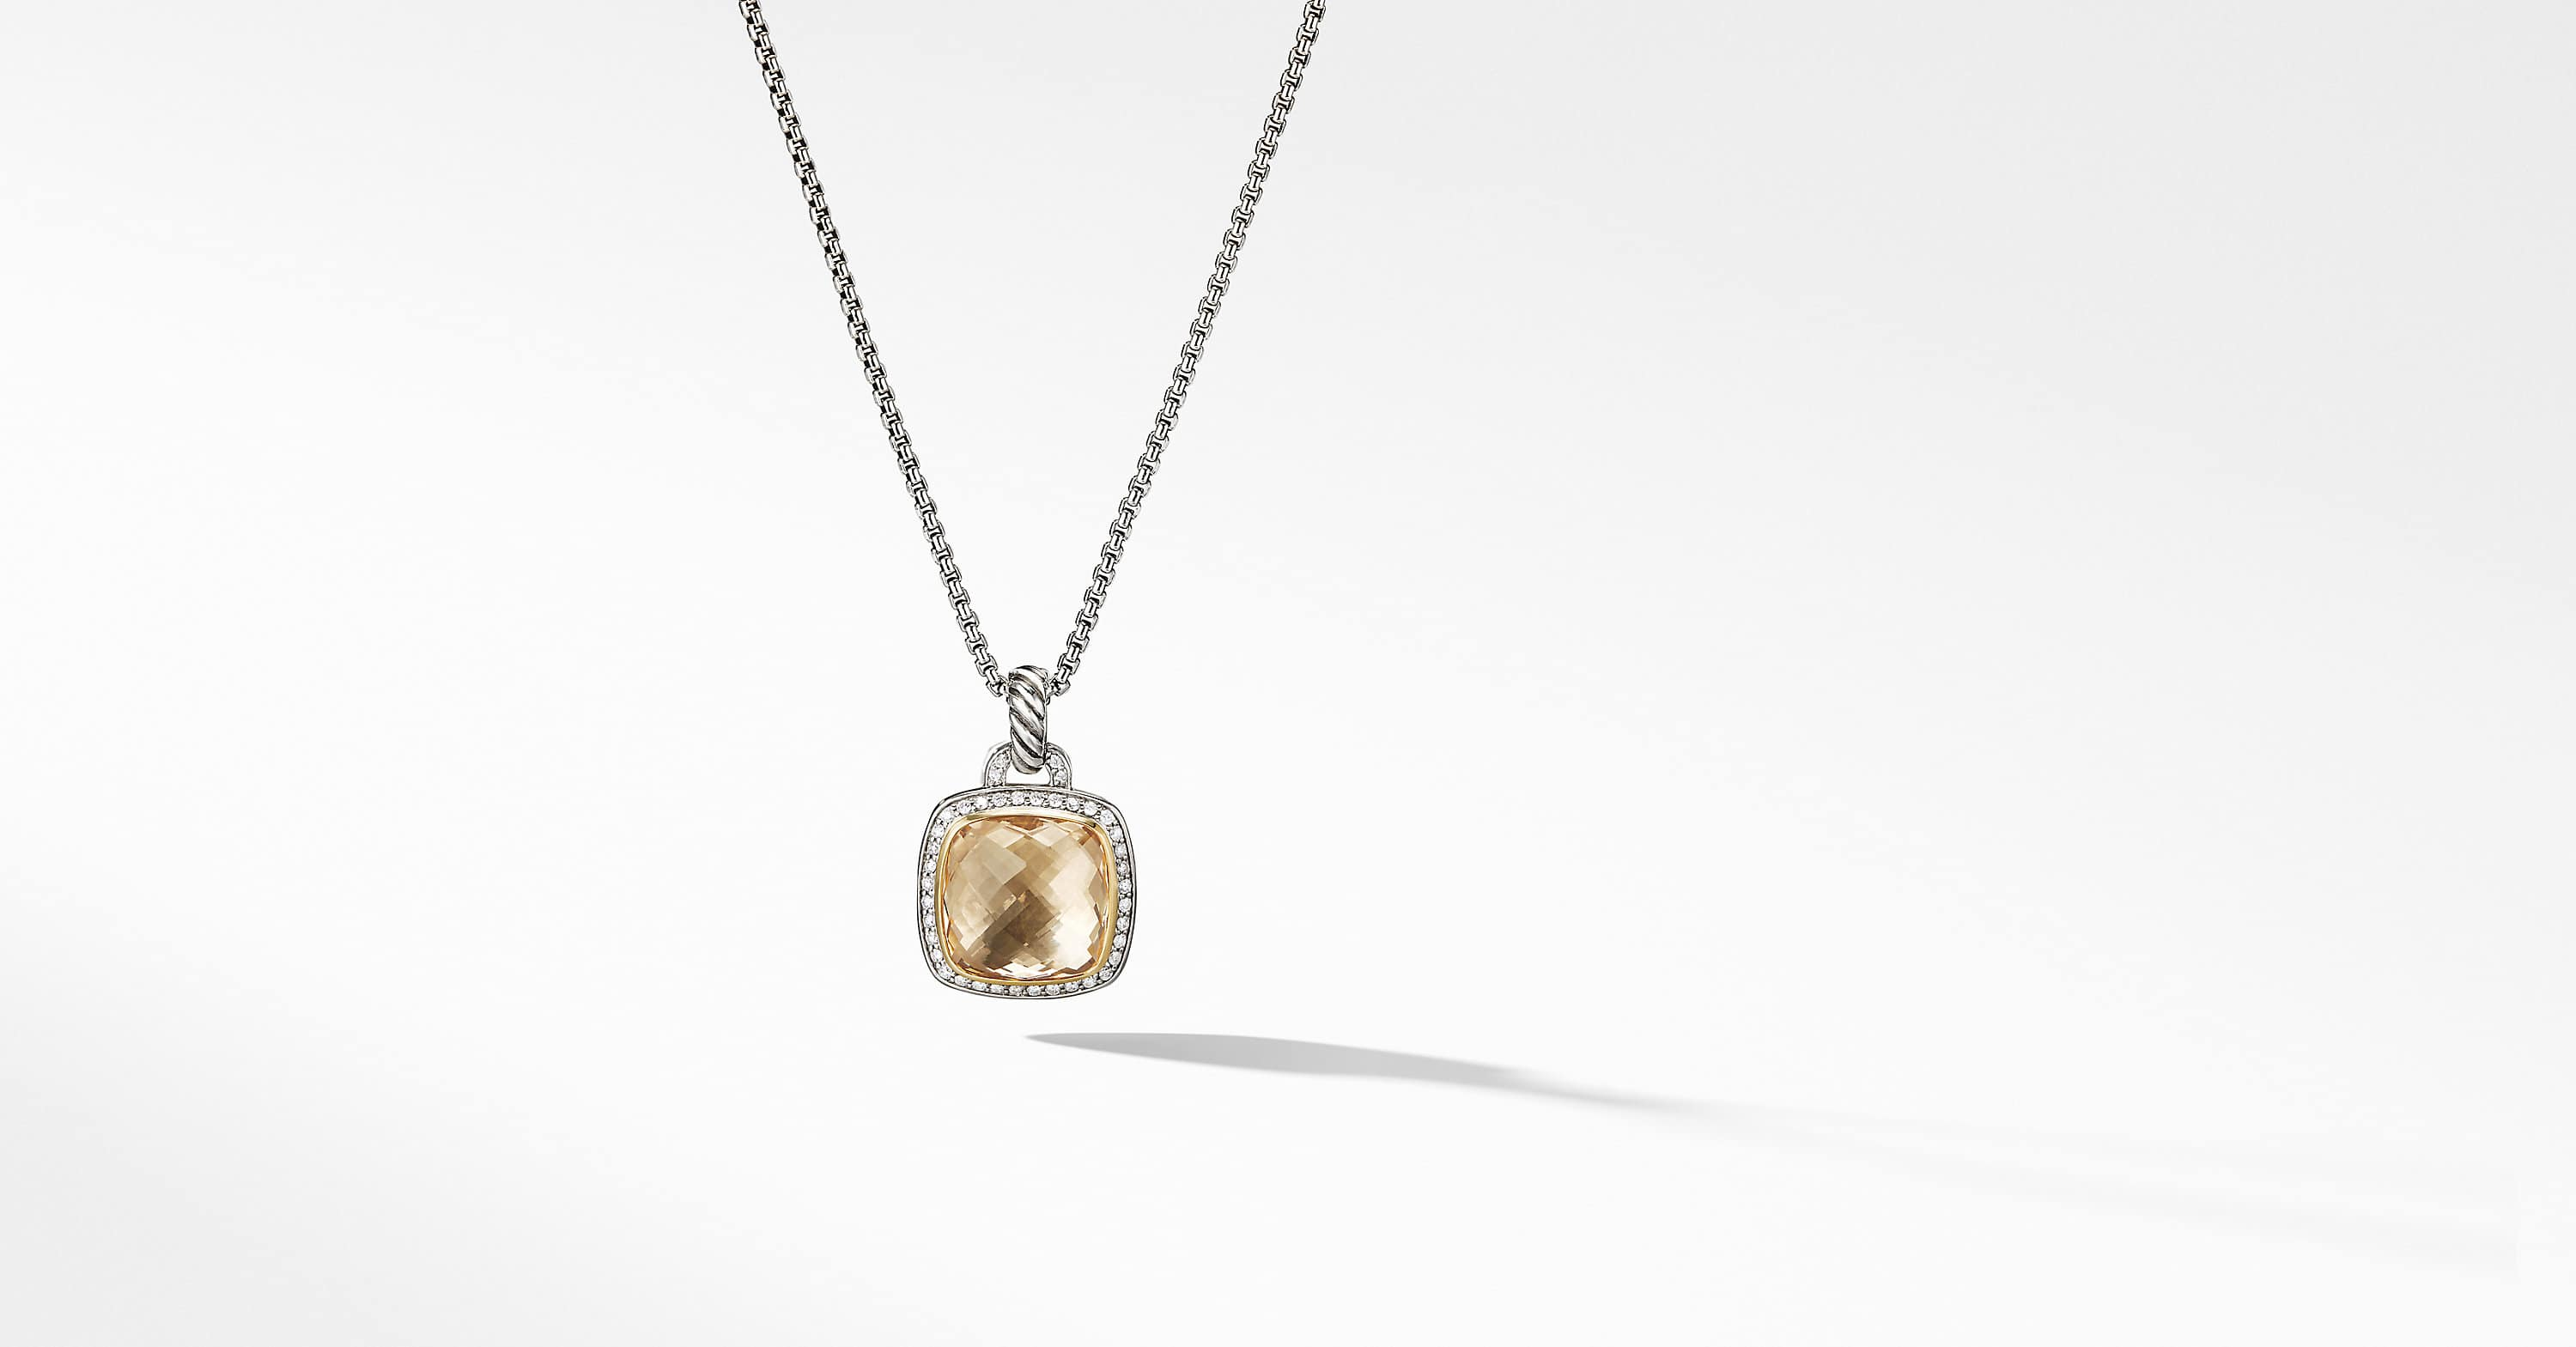 Albion Pendant with 18K Gold and Diamonds, 14mm